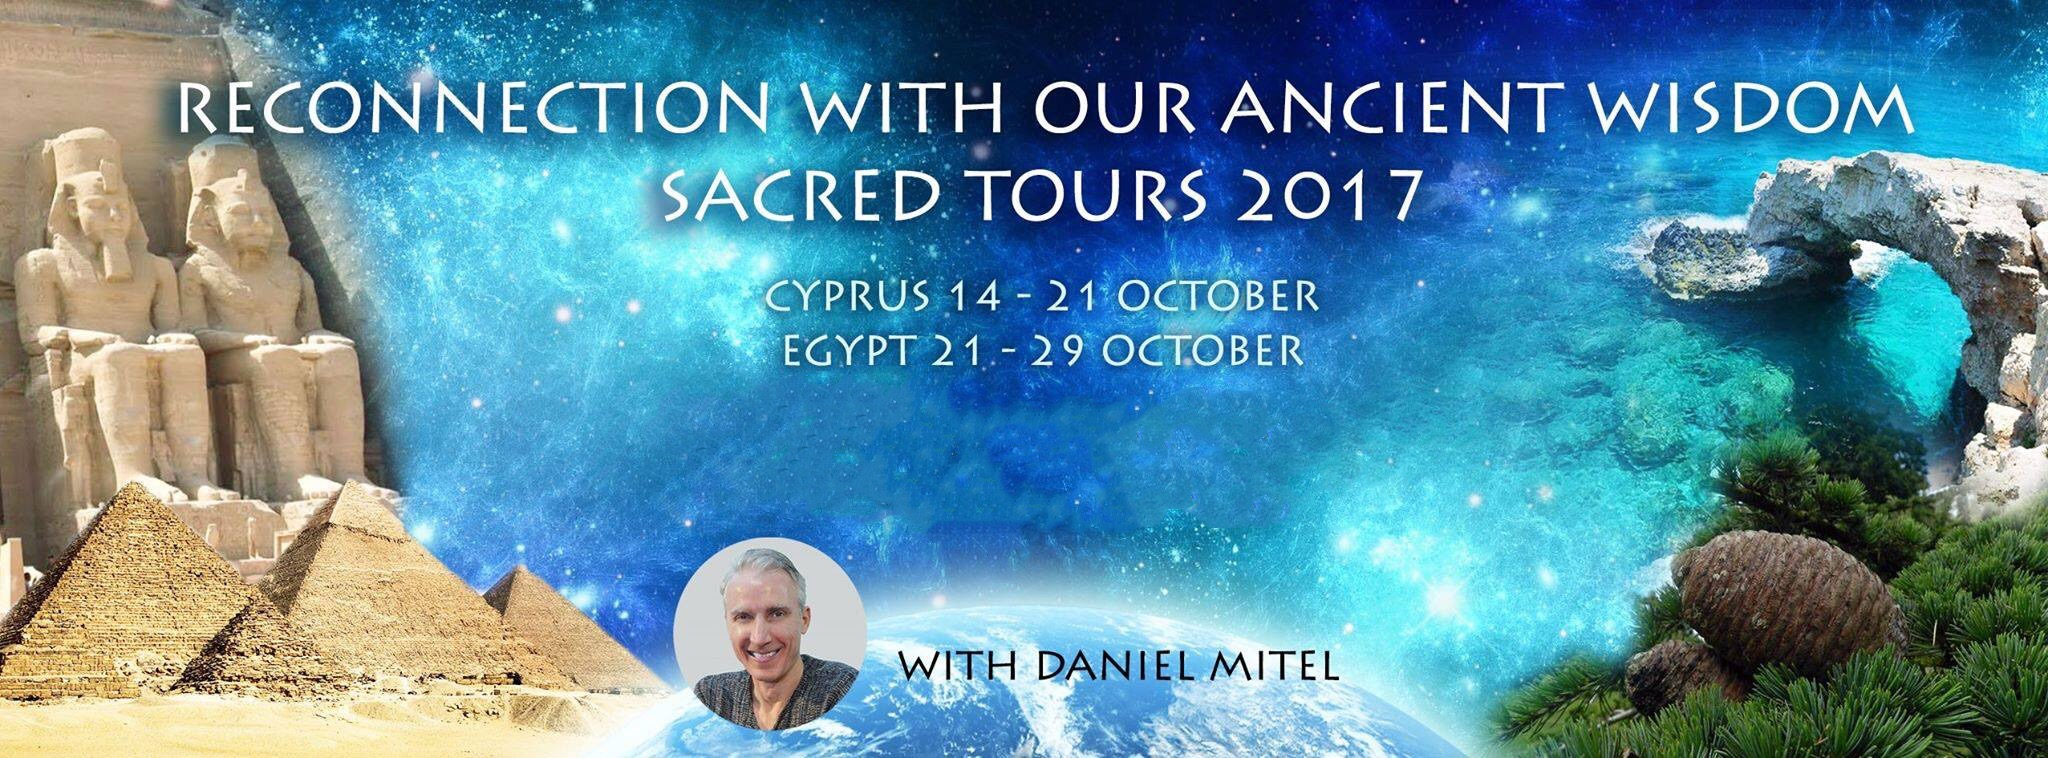 Sacred Journey to Cyprus and Egypt, Oct 2017